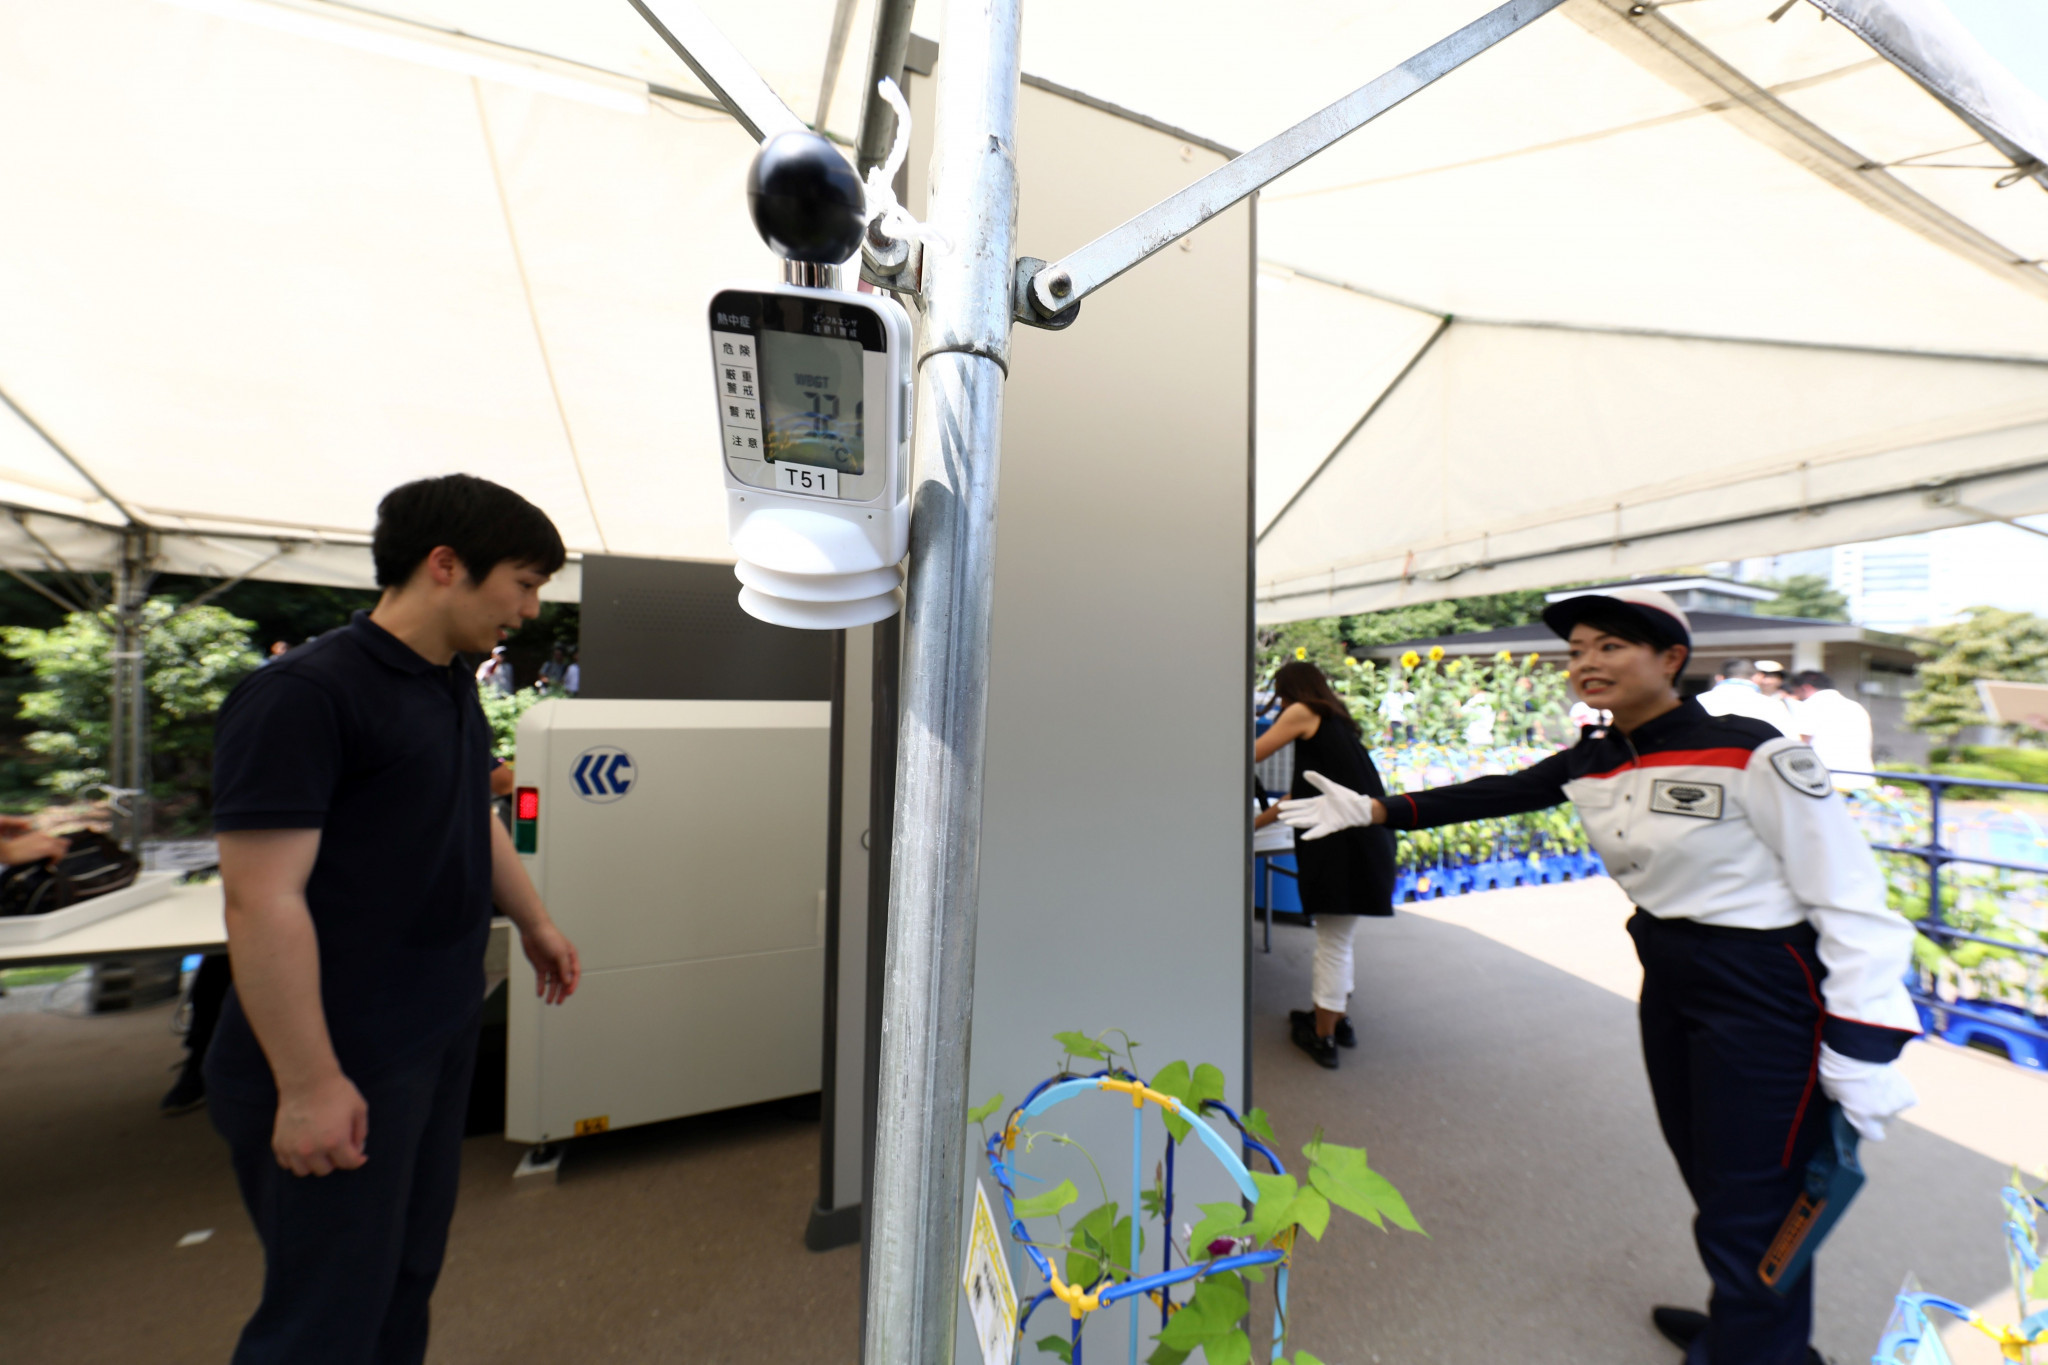 Tokyo 2020 has been testing security measures in preparation for the Olympic and Paralympic Games ©Getty Images